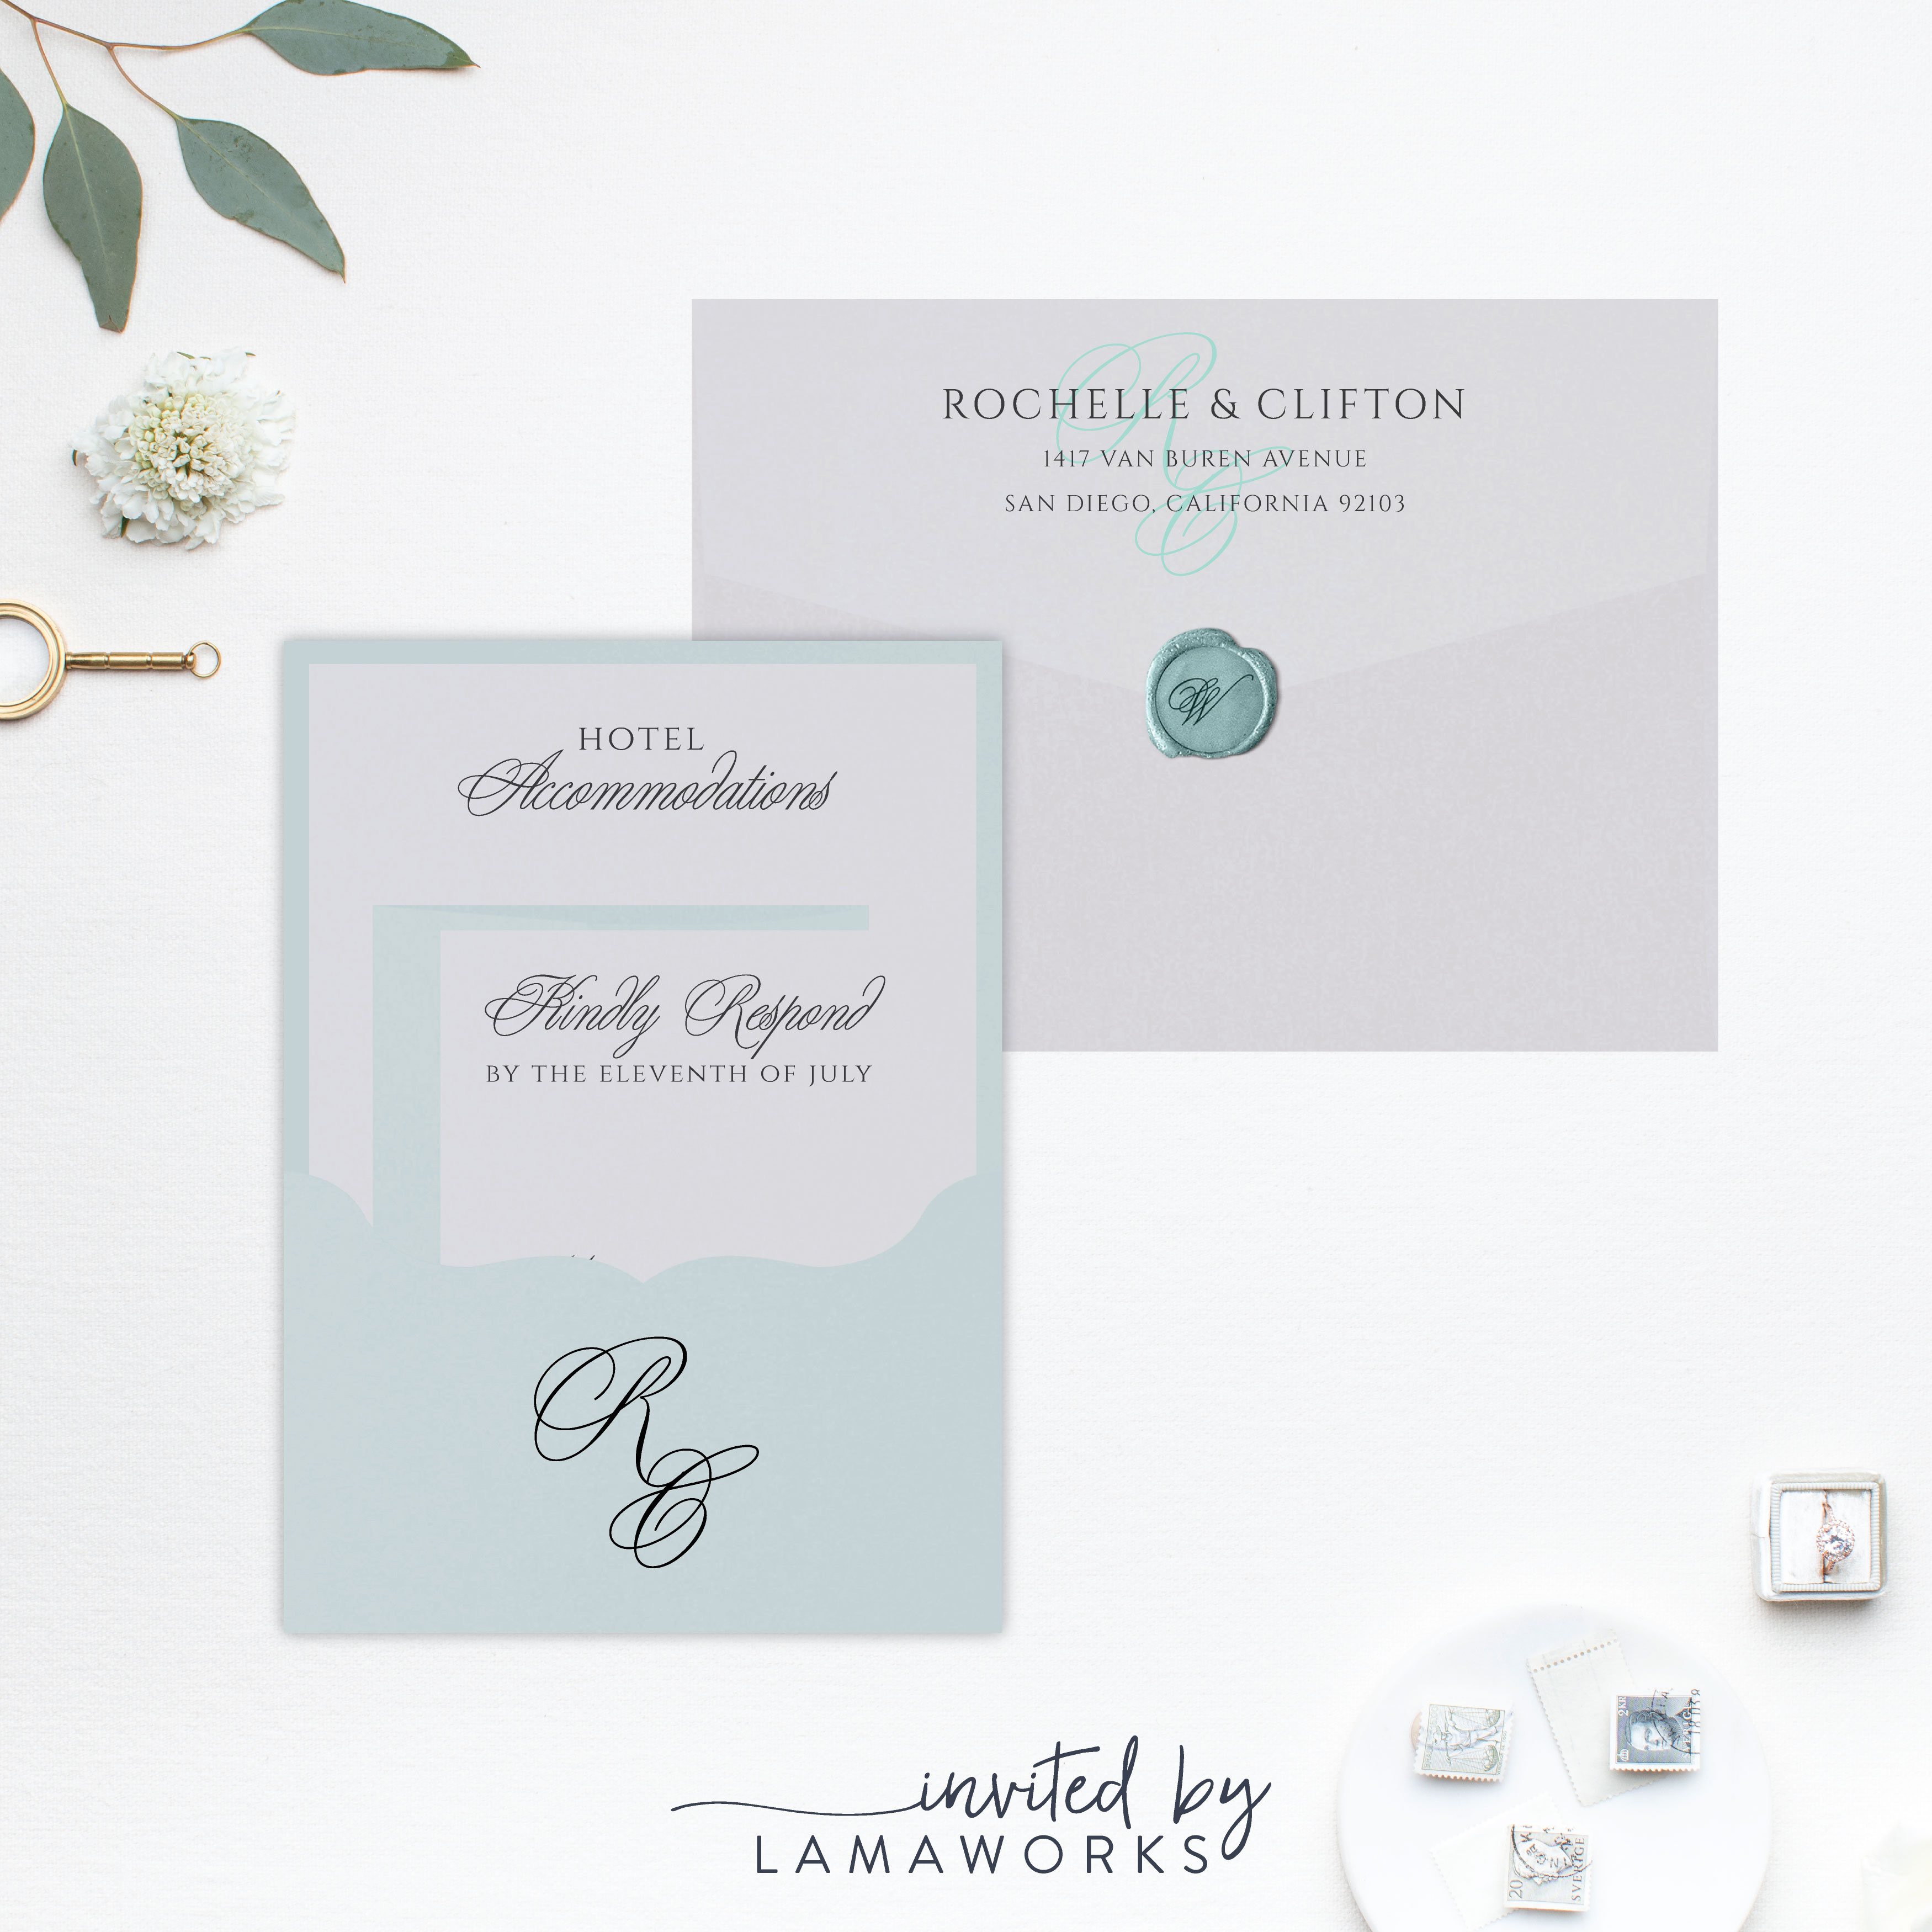 The Rochelle and Clifton Collection